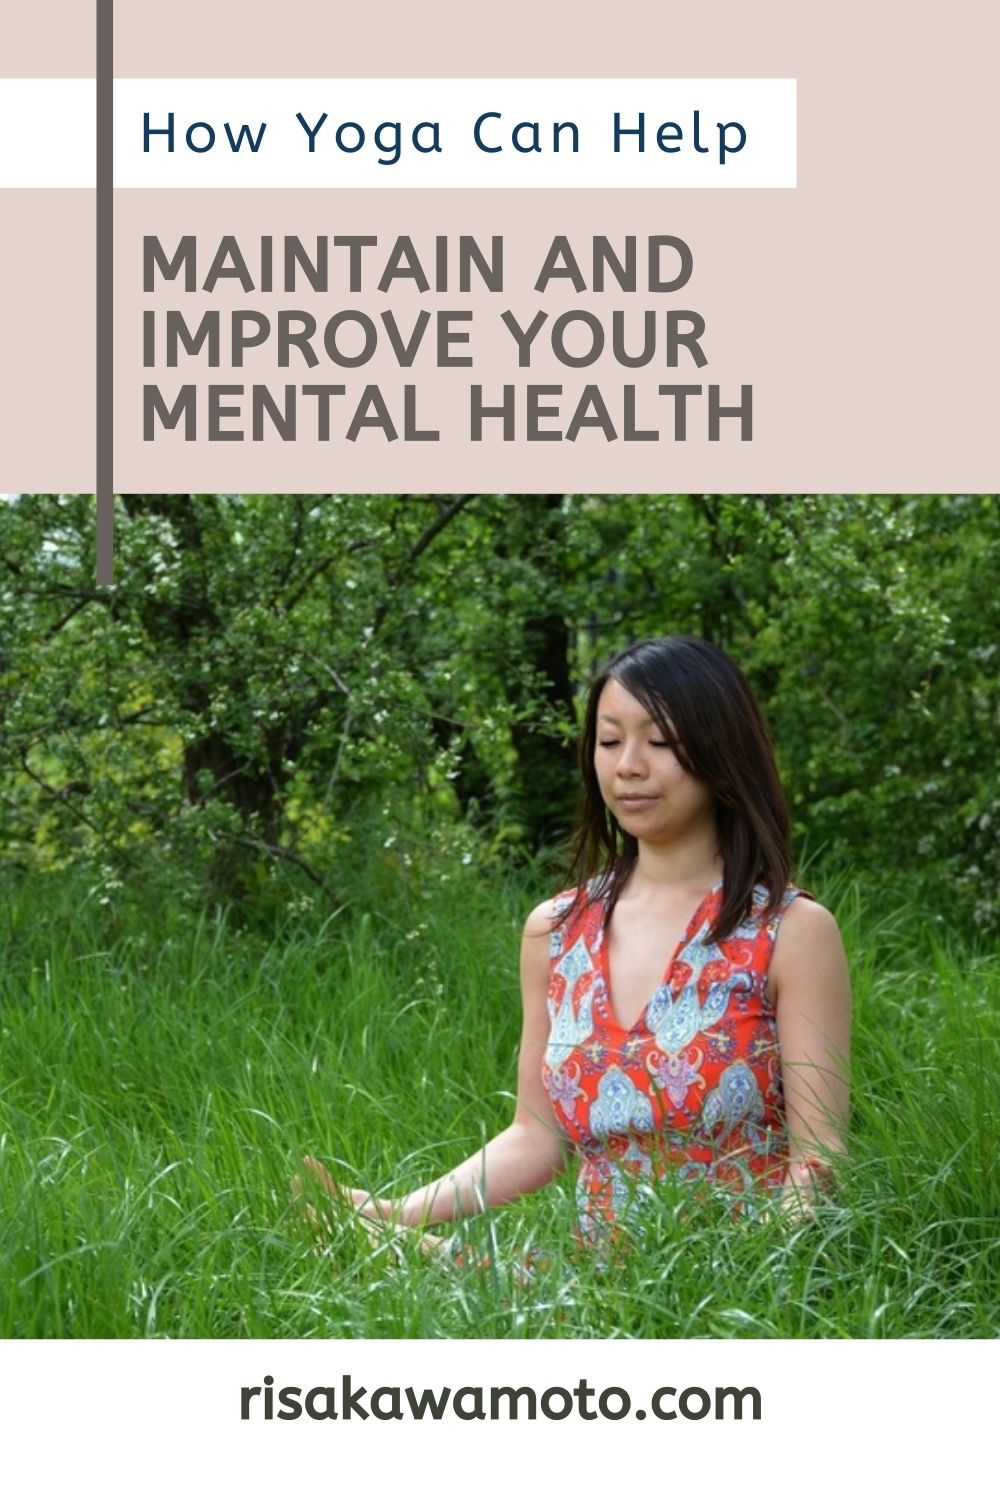 How Yoga Can Help Maintain and Improve Your Mental Health